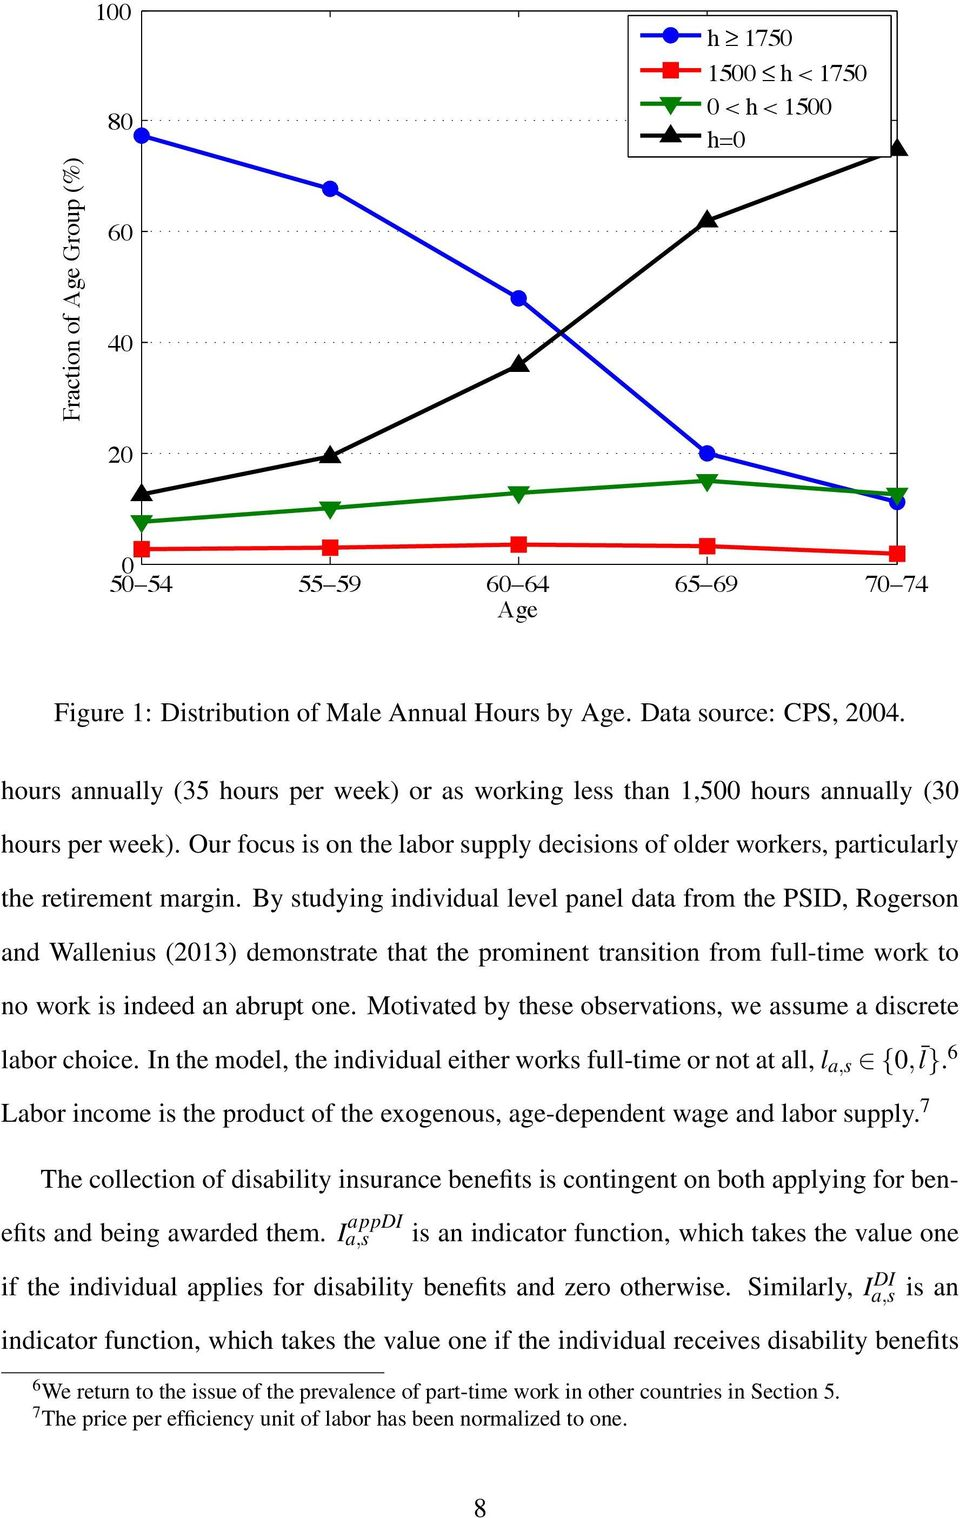 By studying individual level panel data from the PSID, Rogerson and Wallenius (2013) demonstrate that the prominent transition from full-time work to no work is indeed an abrupt one.